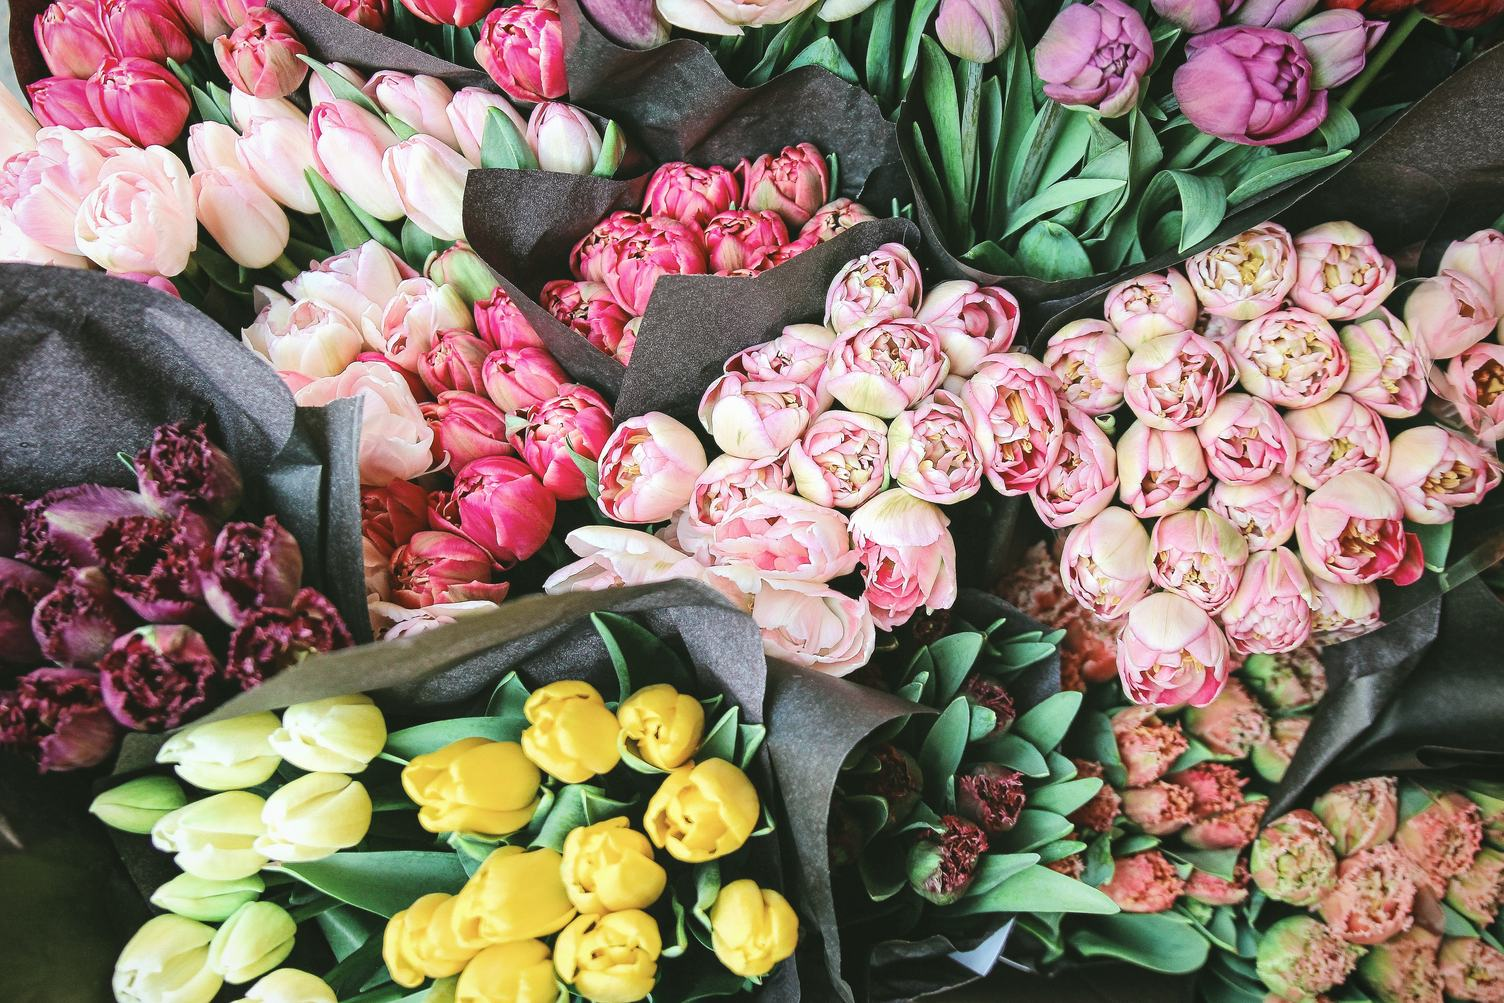 Top View of Beautiful Spring Flowers Tulips